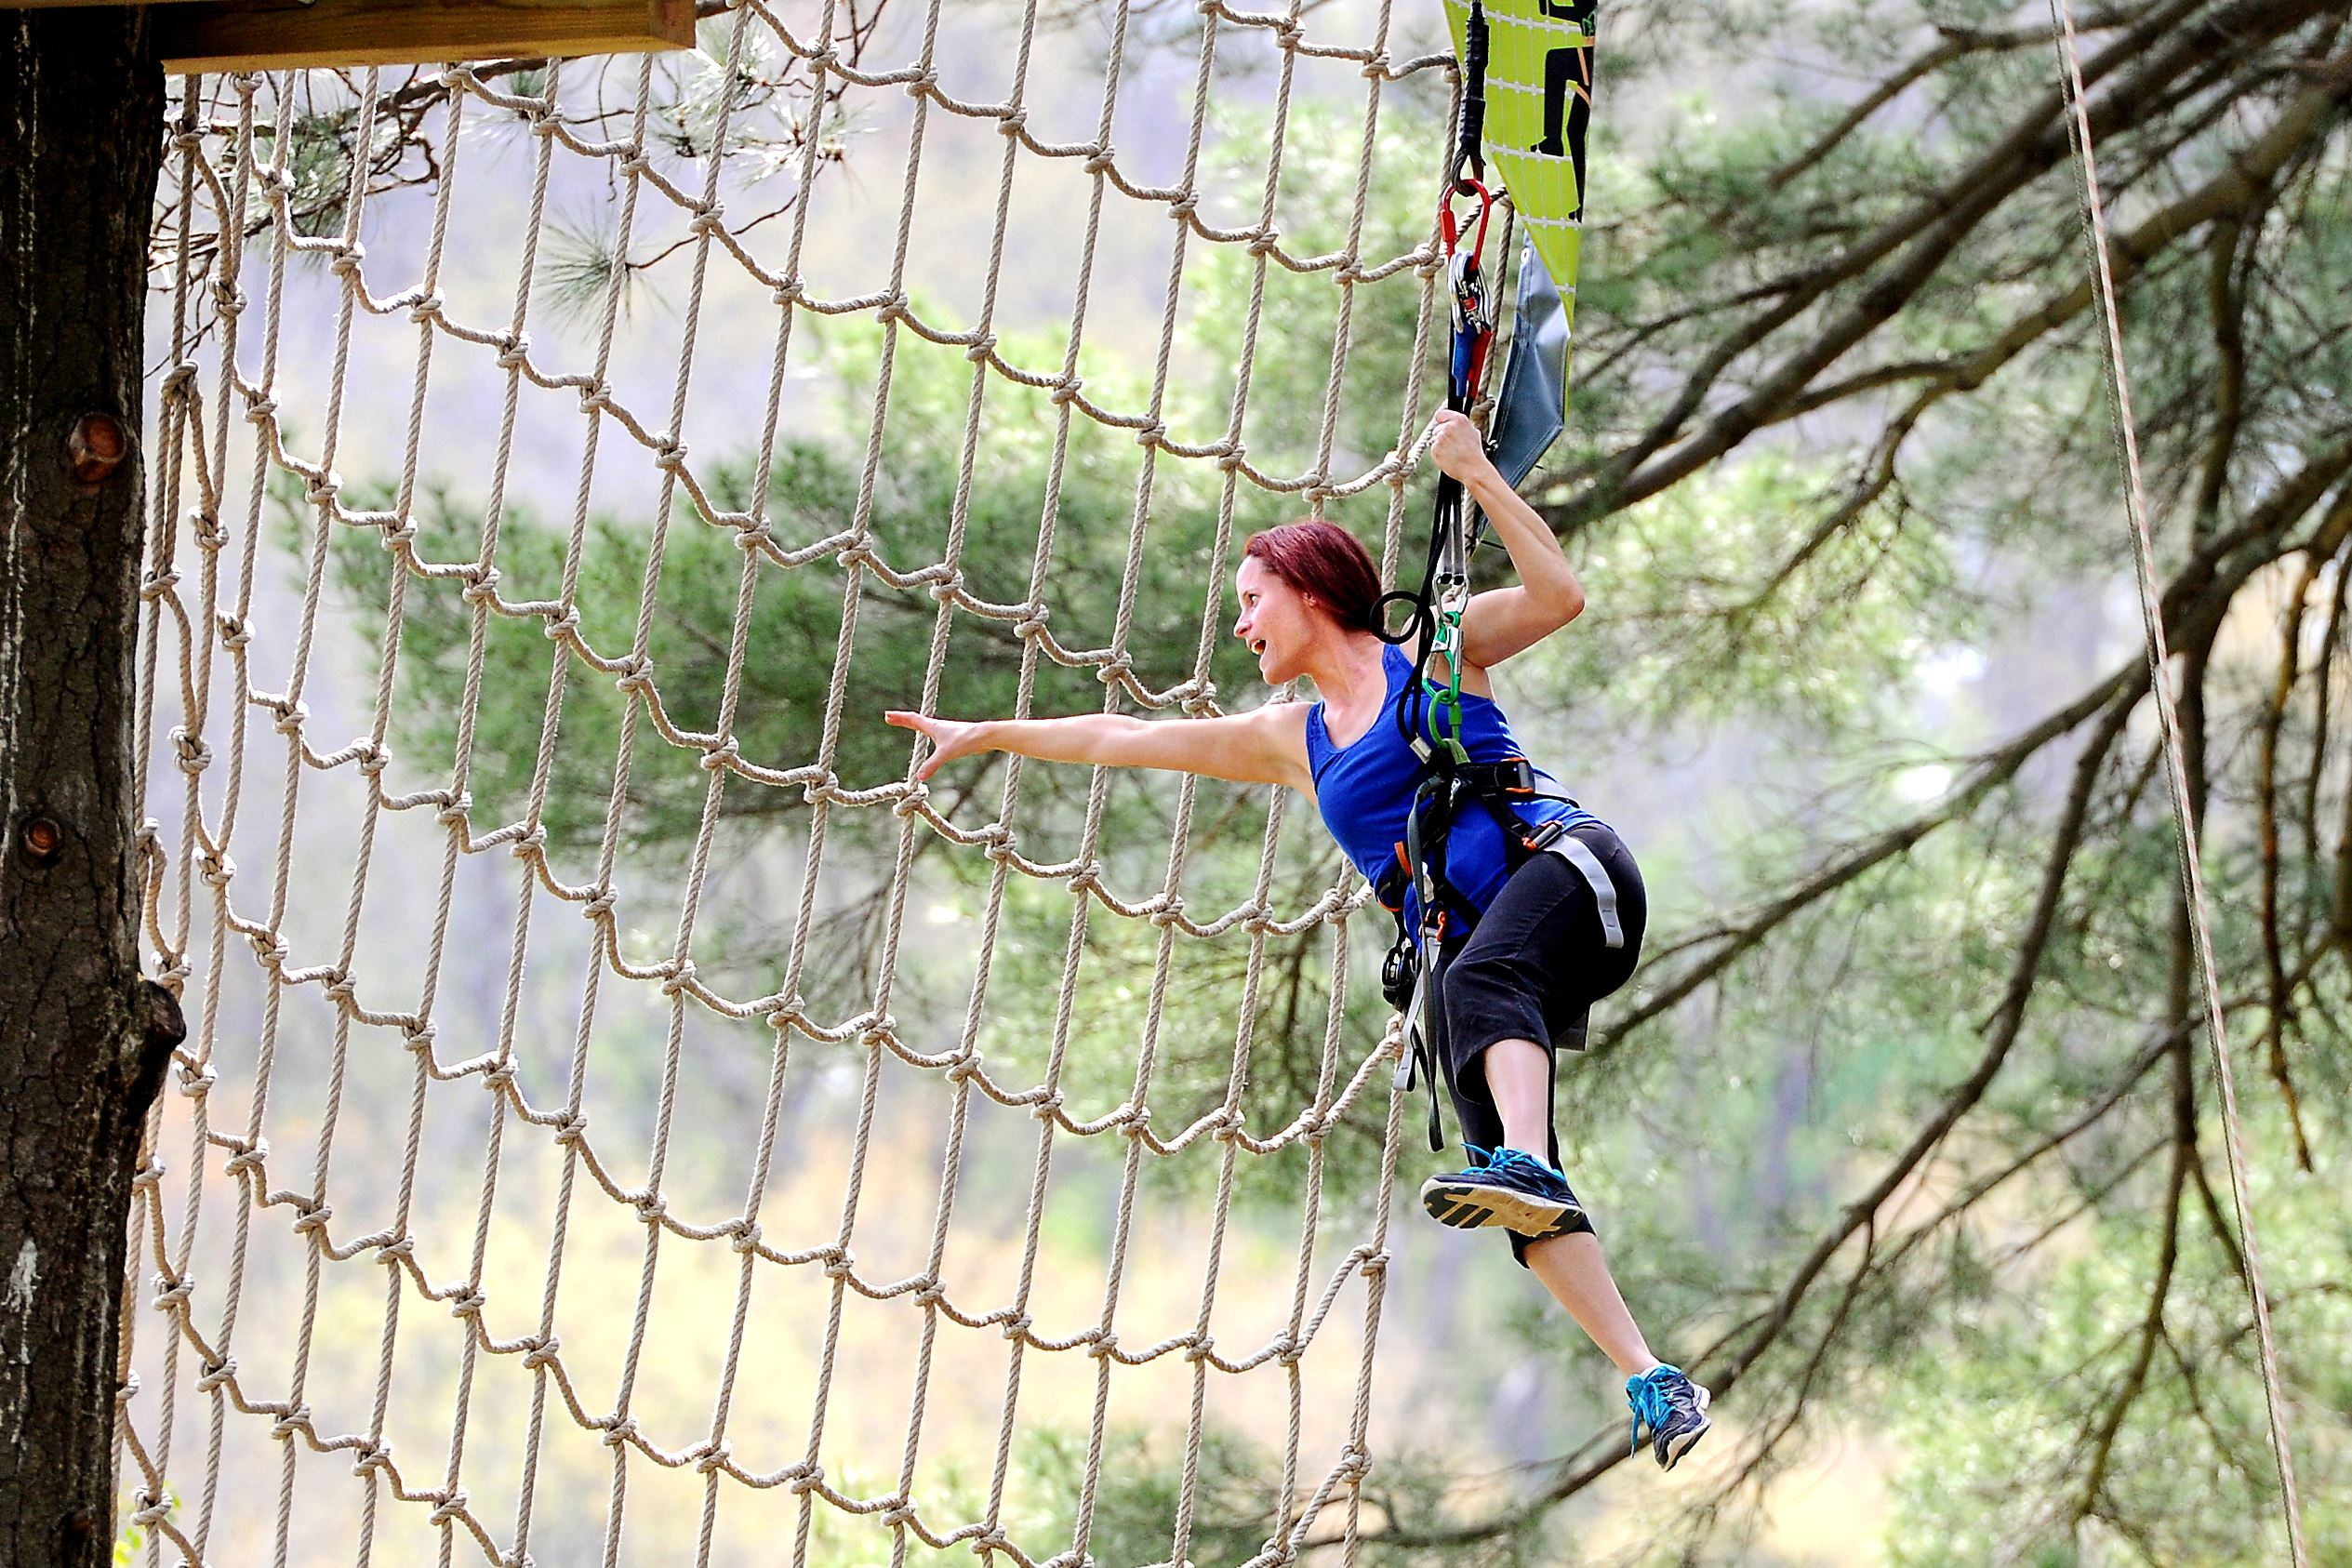 Zip-line Adventure Park After Labor Day, September 3, , the Zip-line Adventure Park will be open weekends only through October 14, Experience the gravity-defying thrill of flying through the trees 25 feet up at our newest adventure, the Ohiopyle Zip-line Adventure Park.